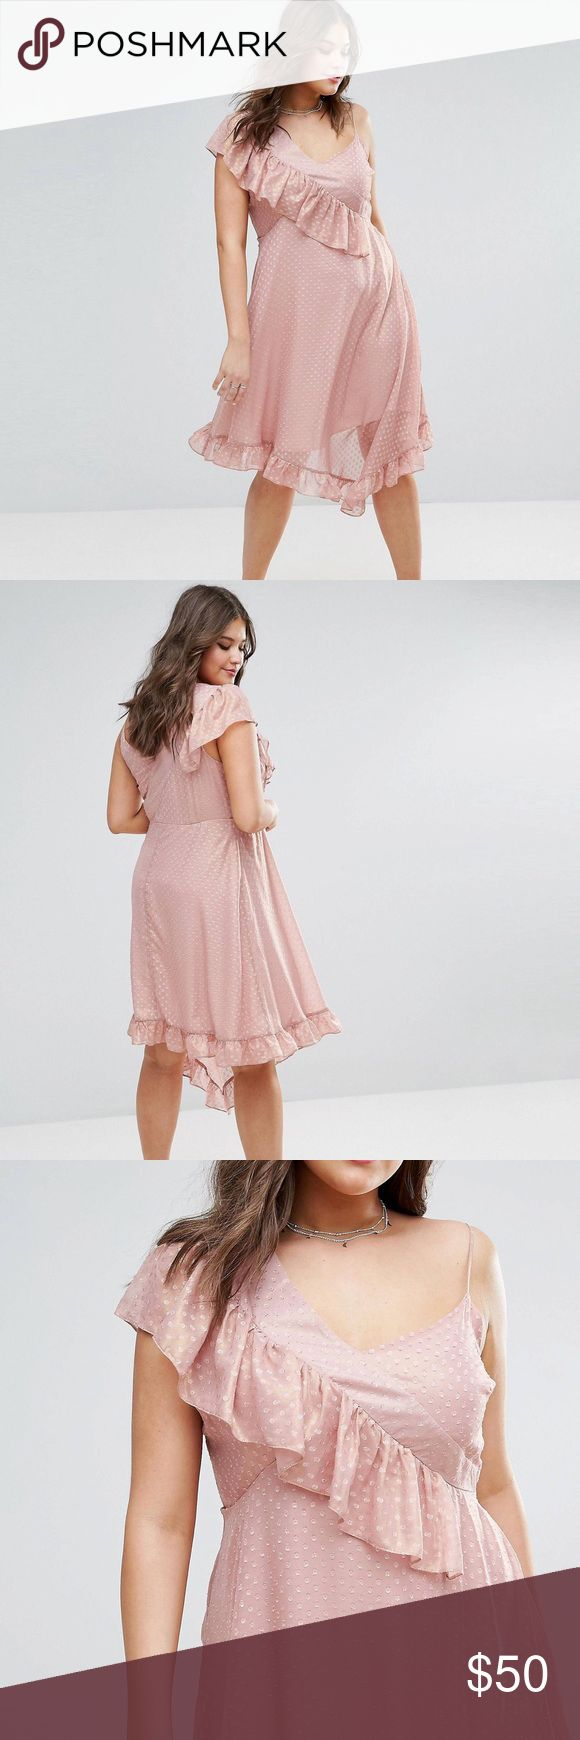 """ASOS Curve Asymmetric Midi Tea Dress Plus-size dress by ASOS CURVE Blush Color Lined woven fabric Textured spot finish Asymmetric neck Ruffle trims Dipped hem Regular fit - true to size Machine wash 100% Polyester Our model wears a UK 18/EU 46/US 14 and is 180cm/5'11"""" tall Midi dress length between: 115-125cm ASOS Curve Dresses Midi"""